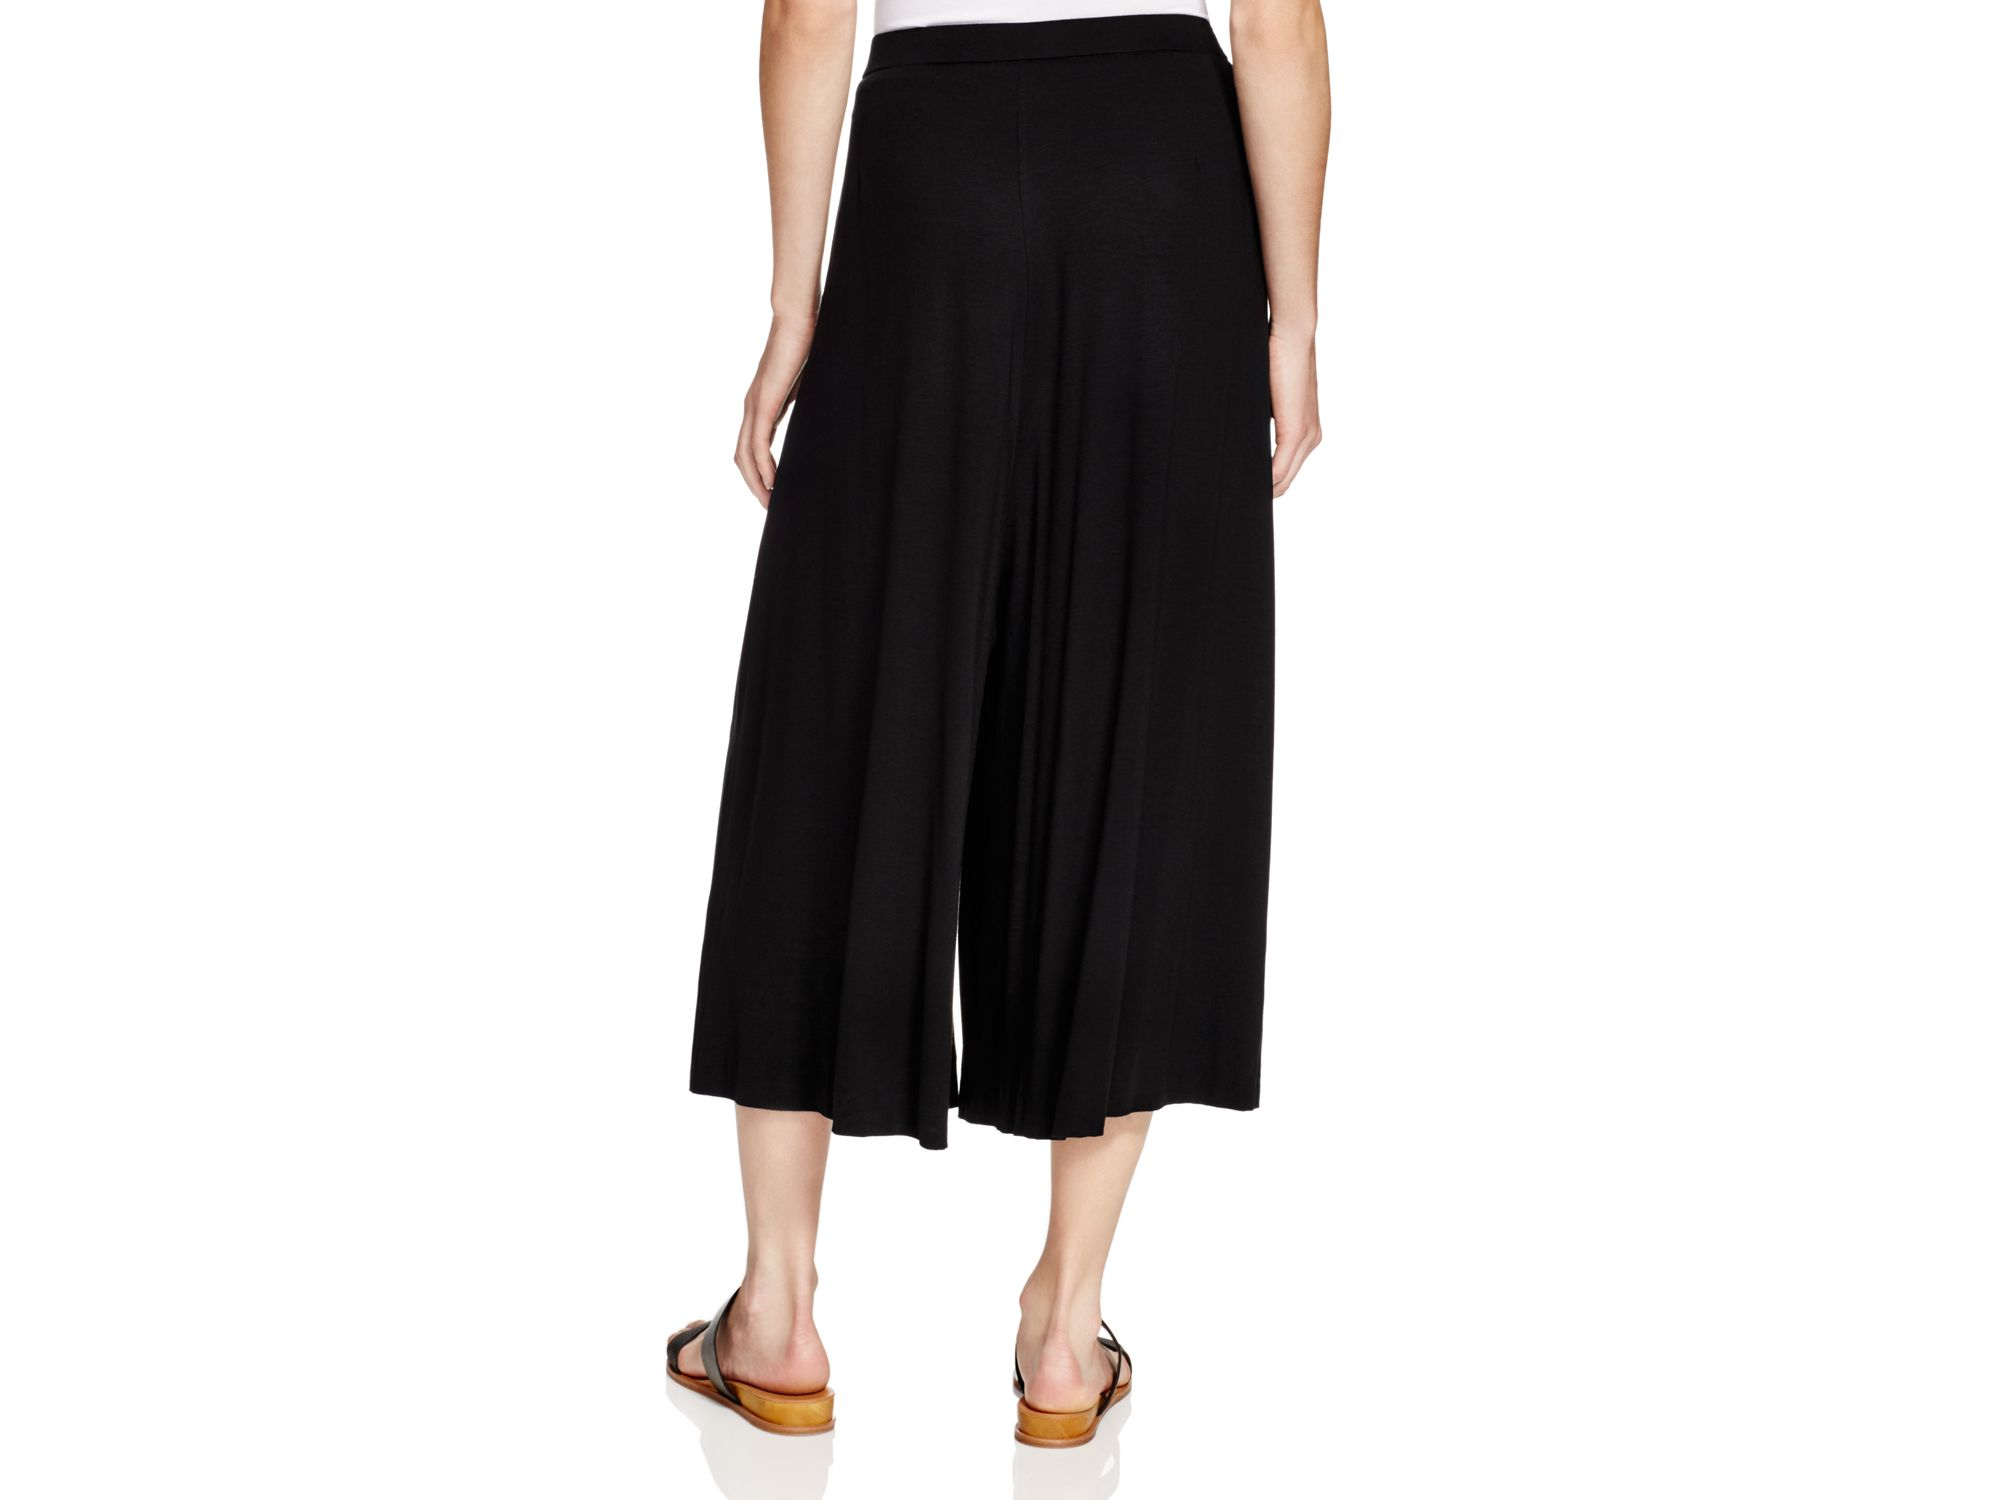 Eileen fisher Pleat Front Knit Gaucho Pants in Black | Lyst